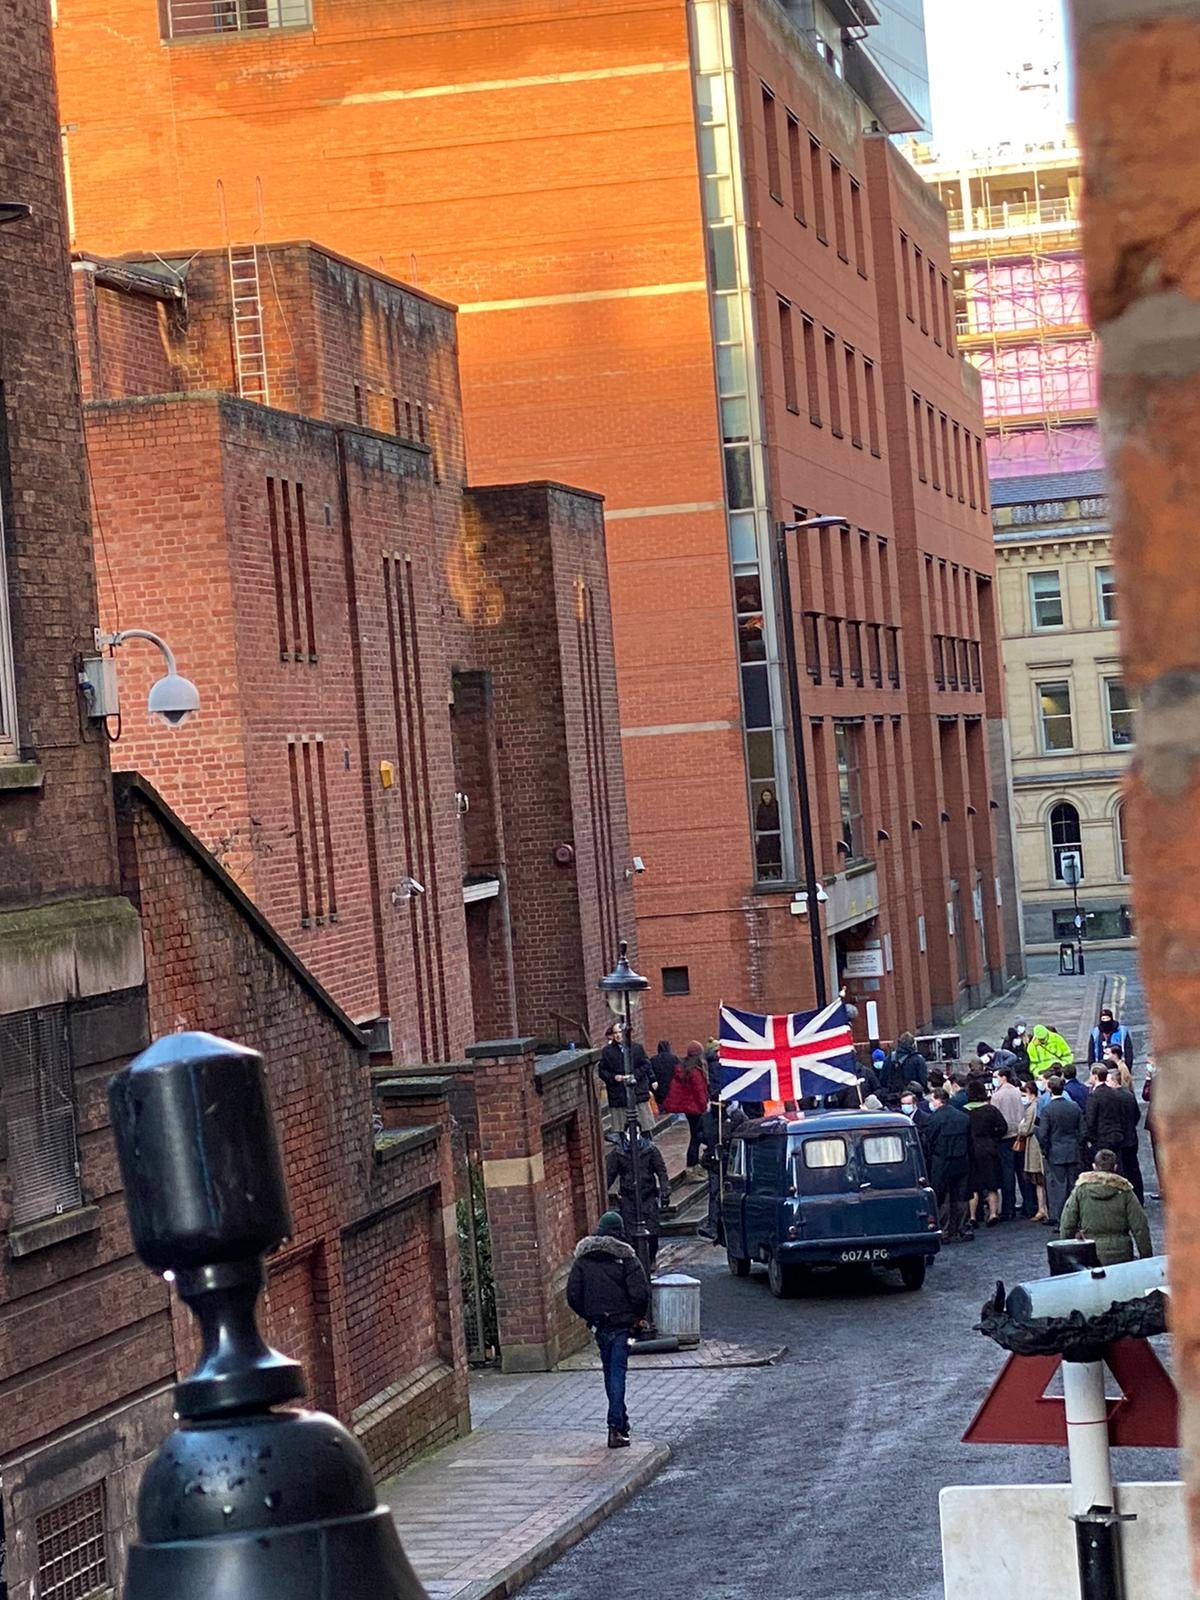 Far-right fascist demonstrators spotted in Manchester for new BBC drama, The Manc